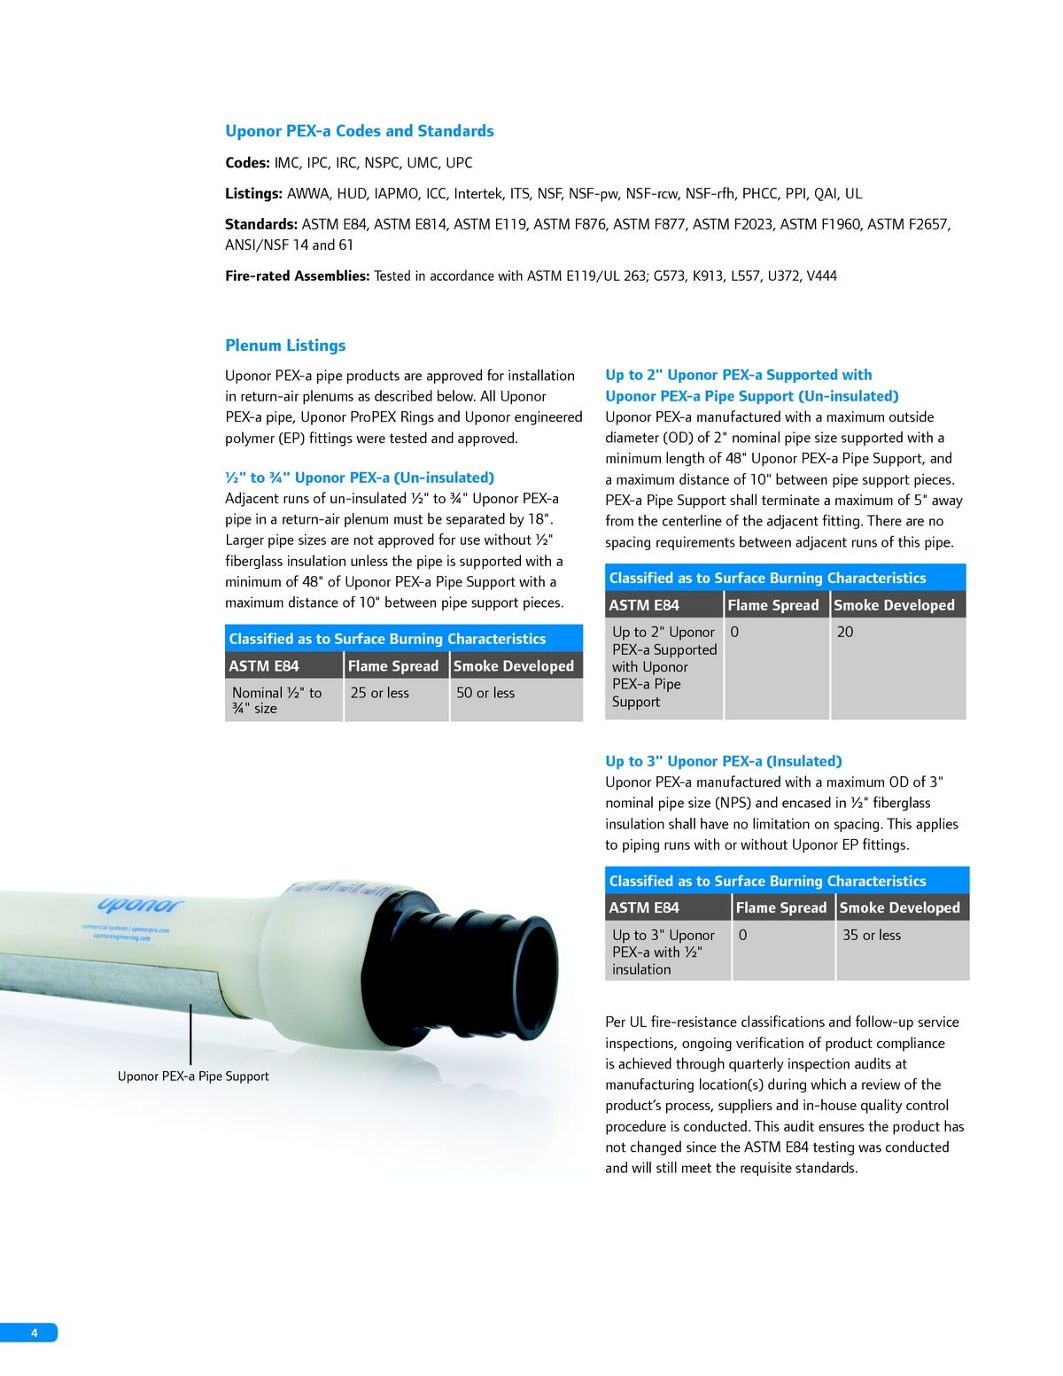 Commercial Piping Engineer Reference Guide